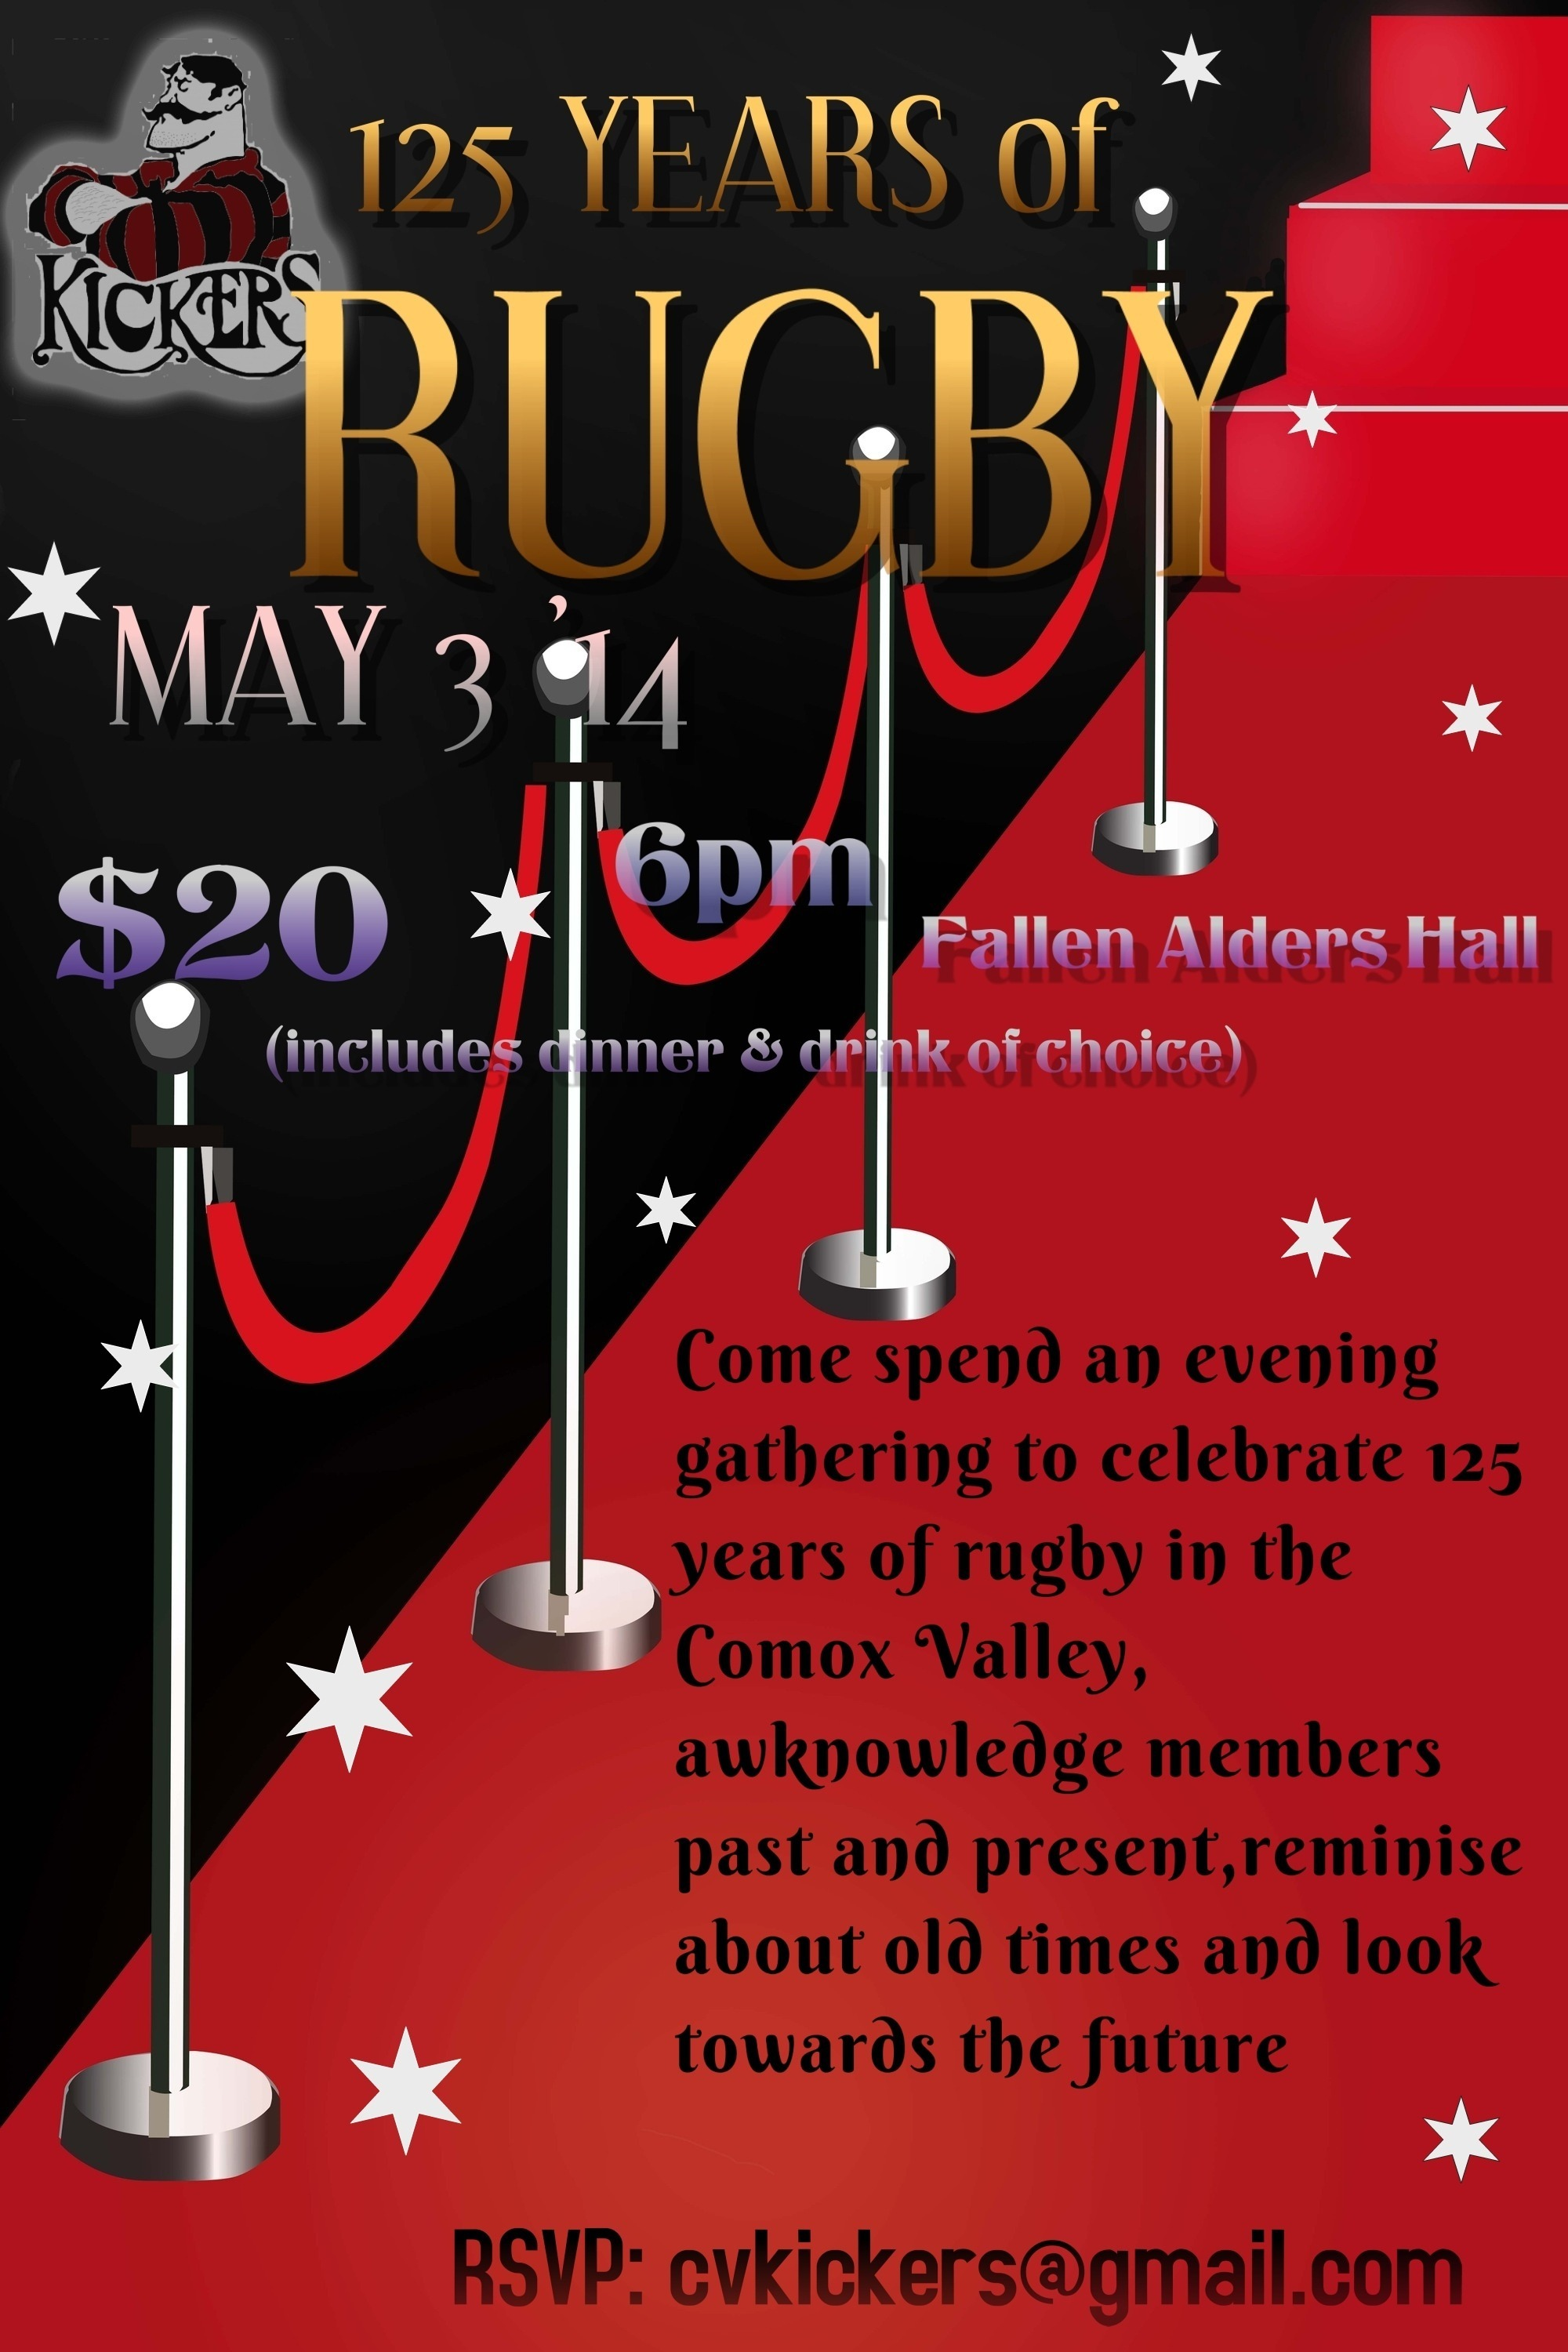 Kickers Annual Awards Banquet and 125 Years of Rugby!